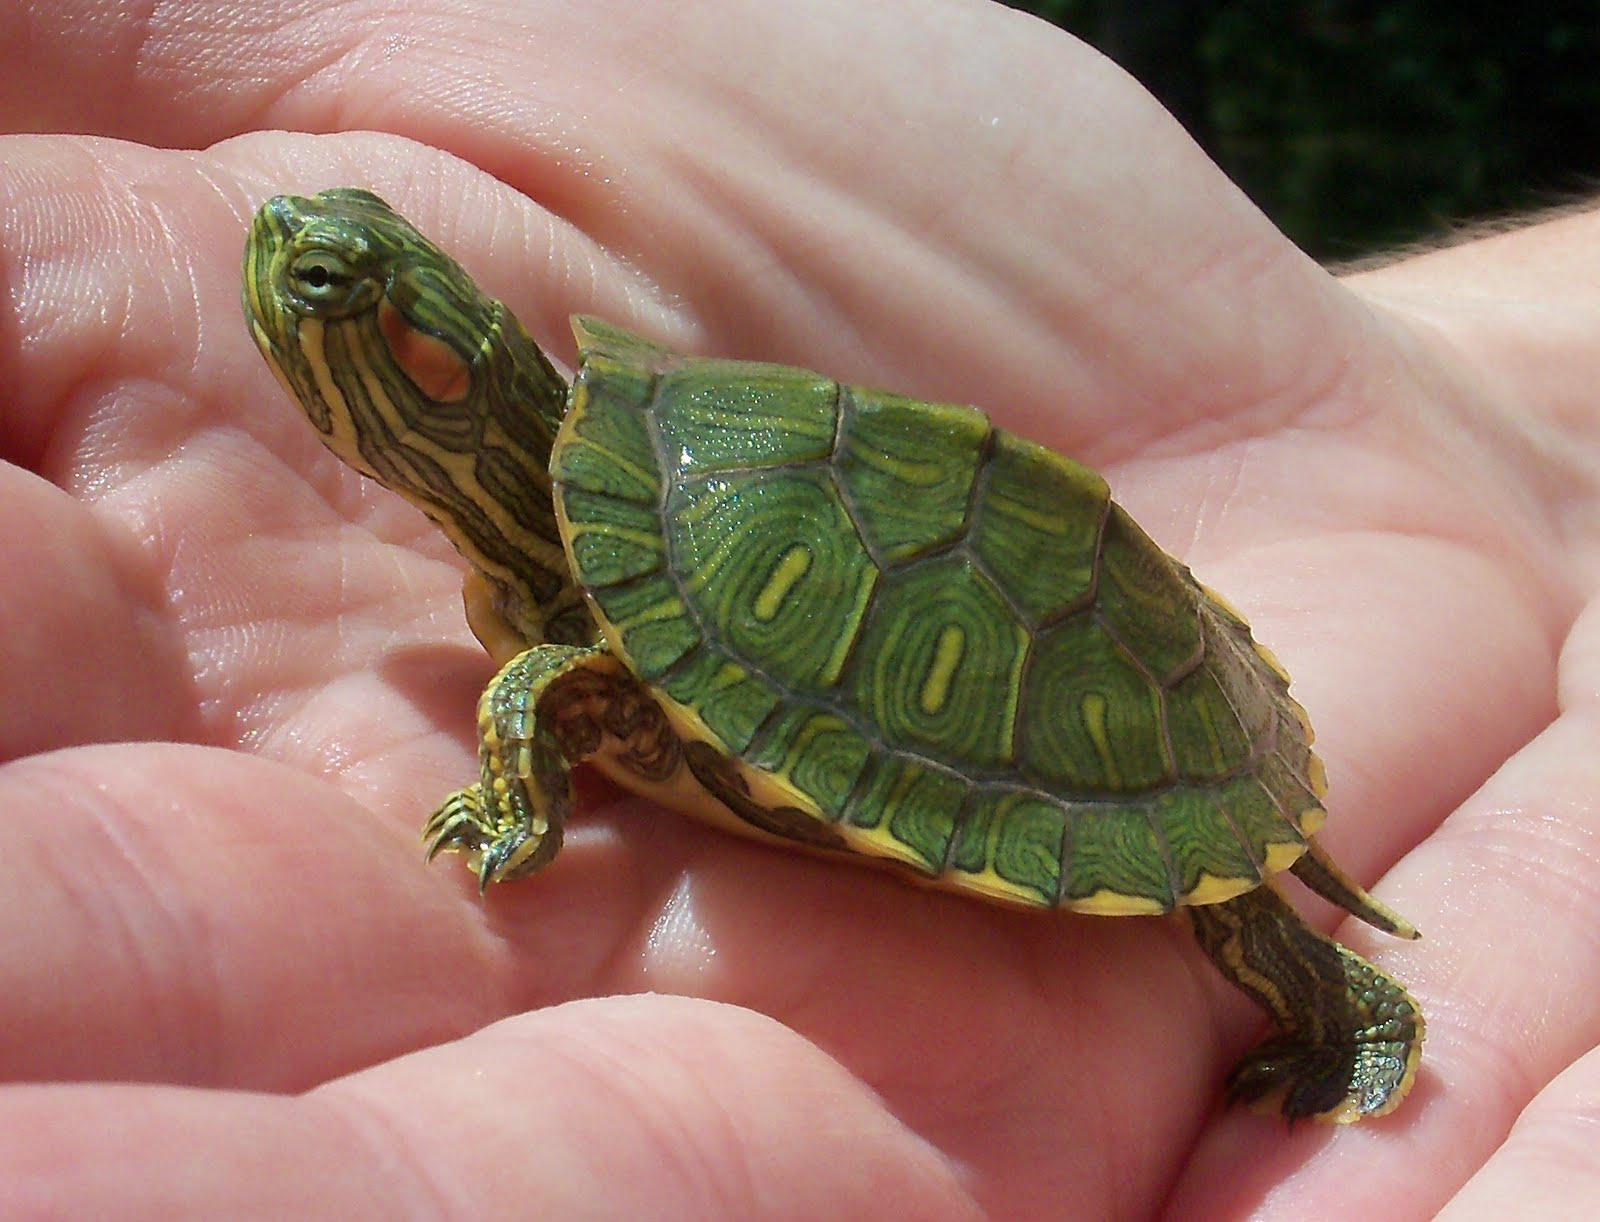 How to care for a turtle